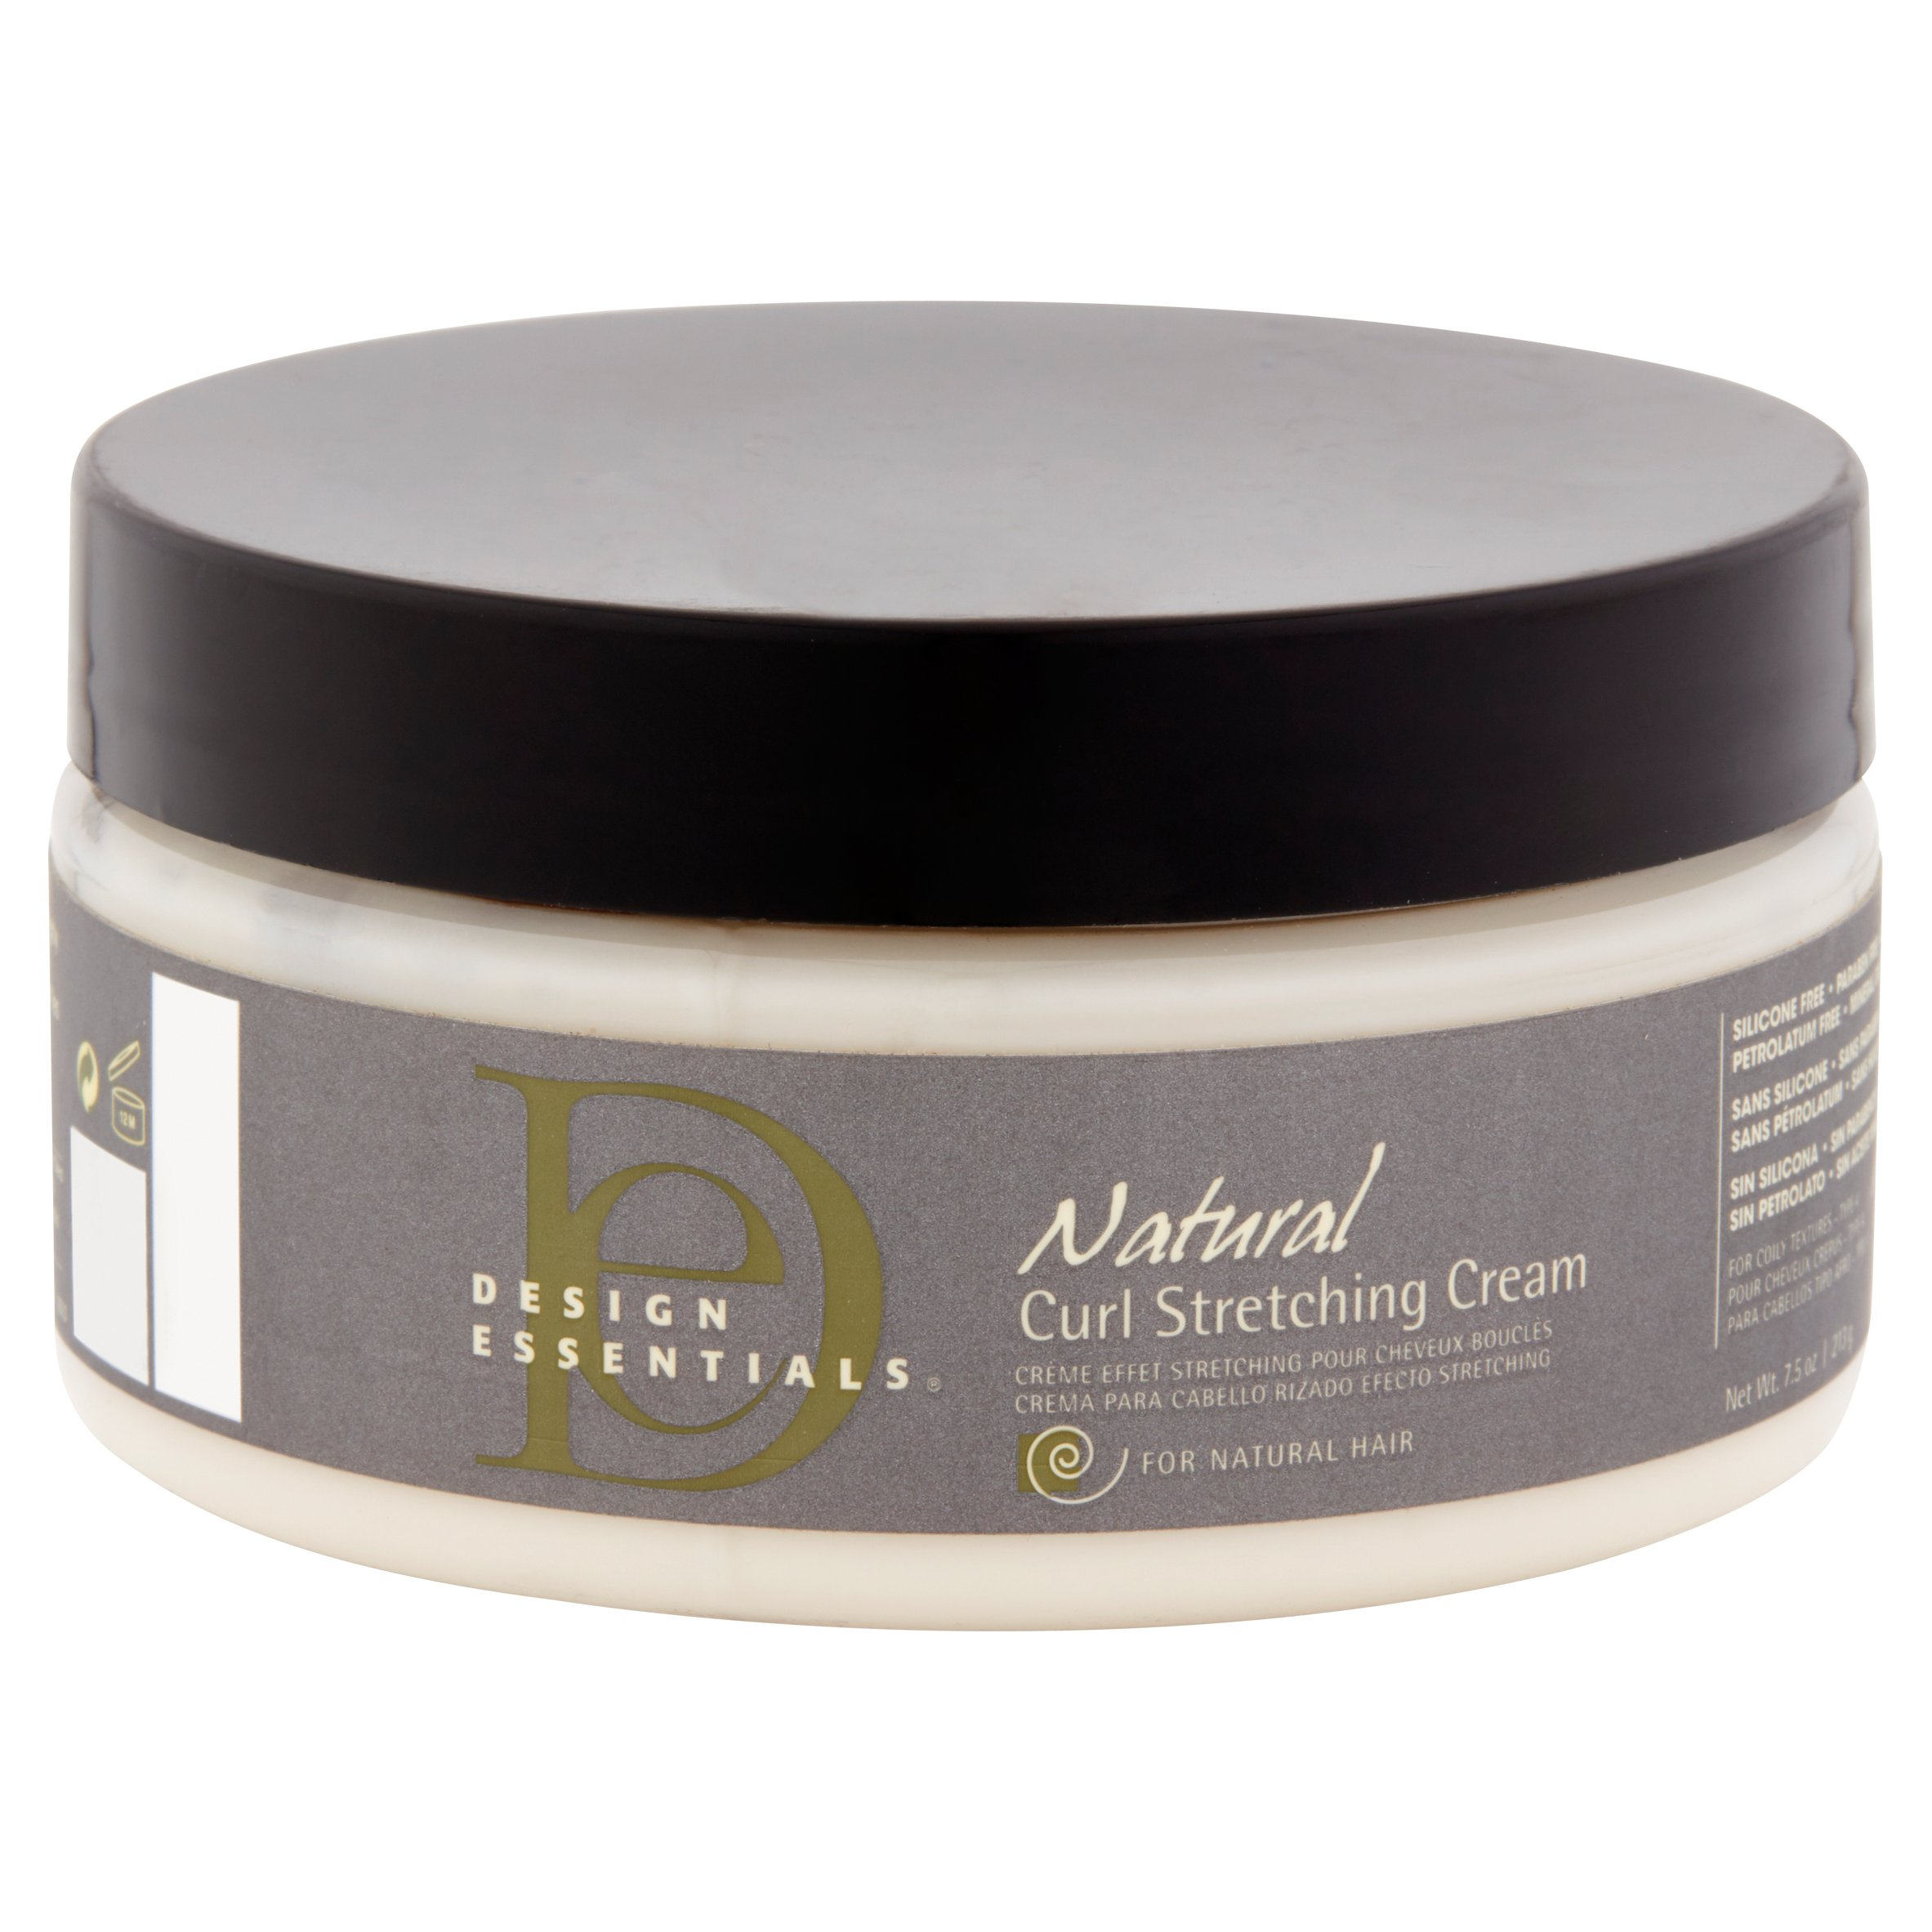 Design Essentials Natural Curl Stretching Cream 75 Oz Walmartcom